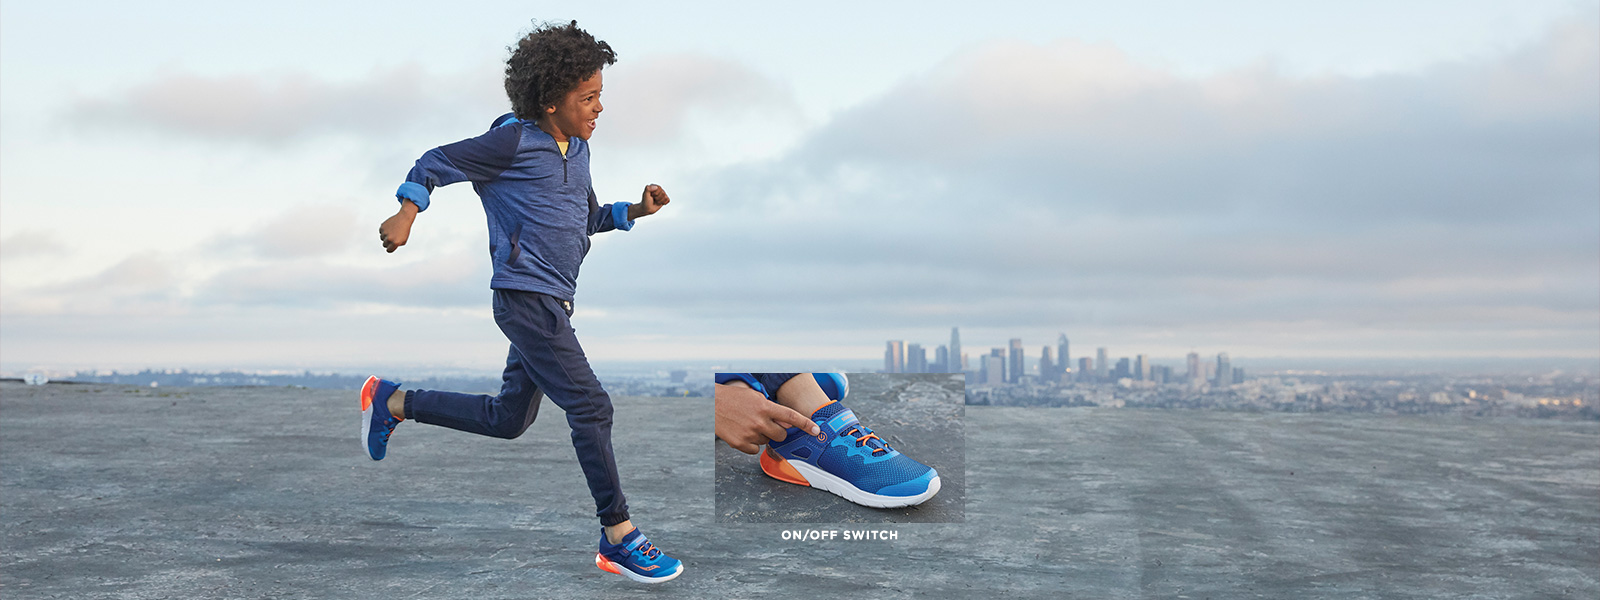 Child running with a city in the background, with a close up of his shoes and their on/off 'flash' switch